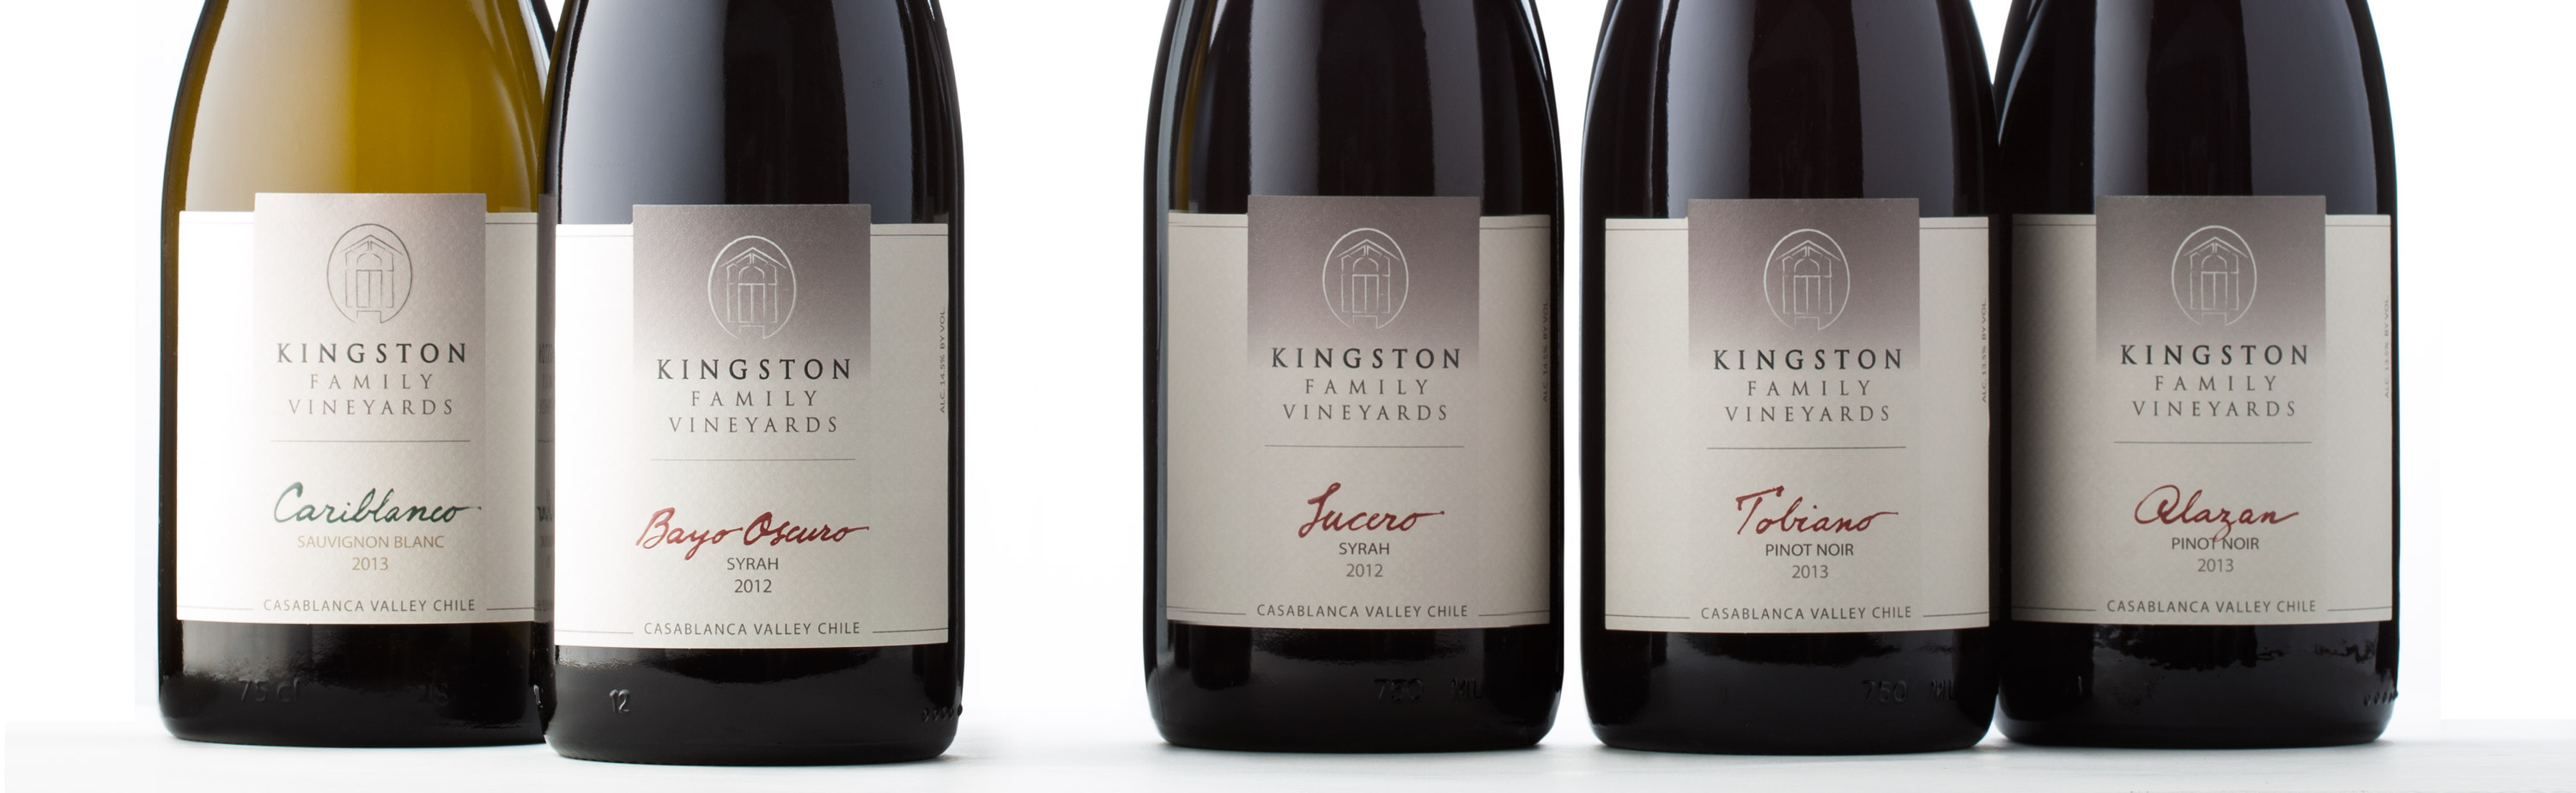 New Kingston Wine Labels